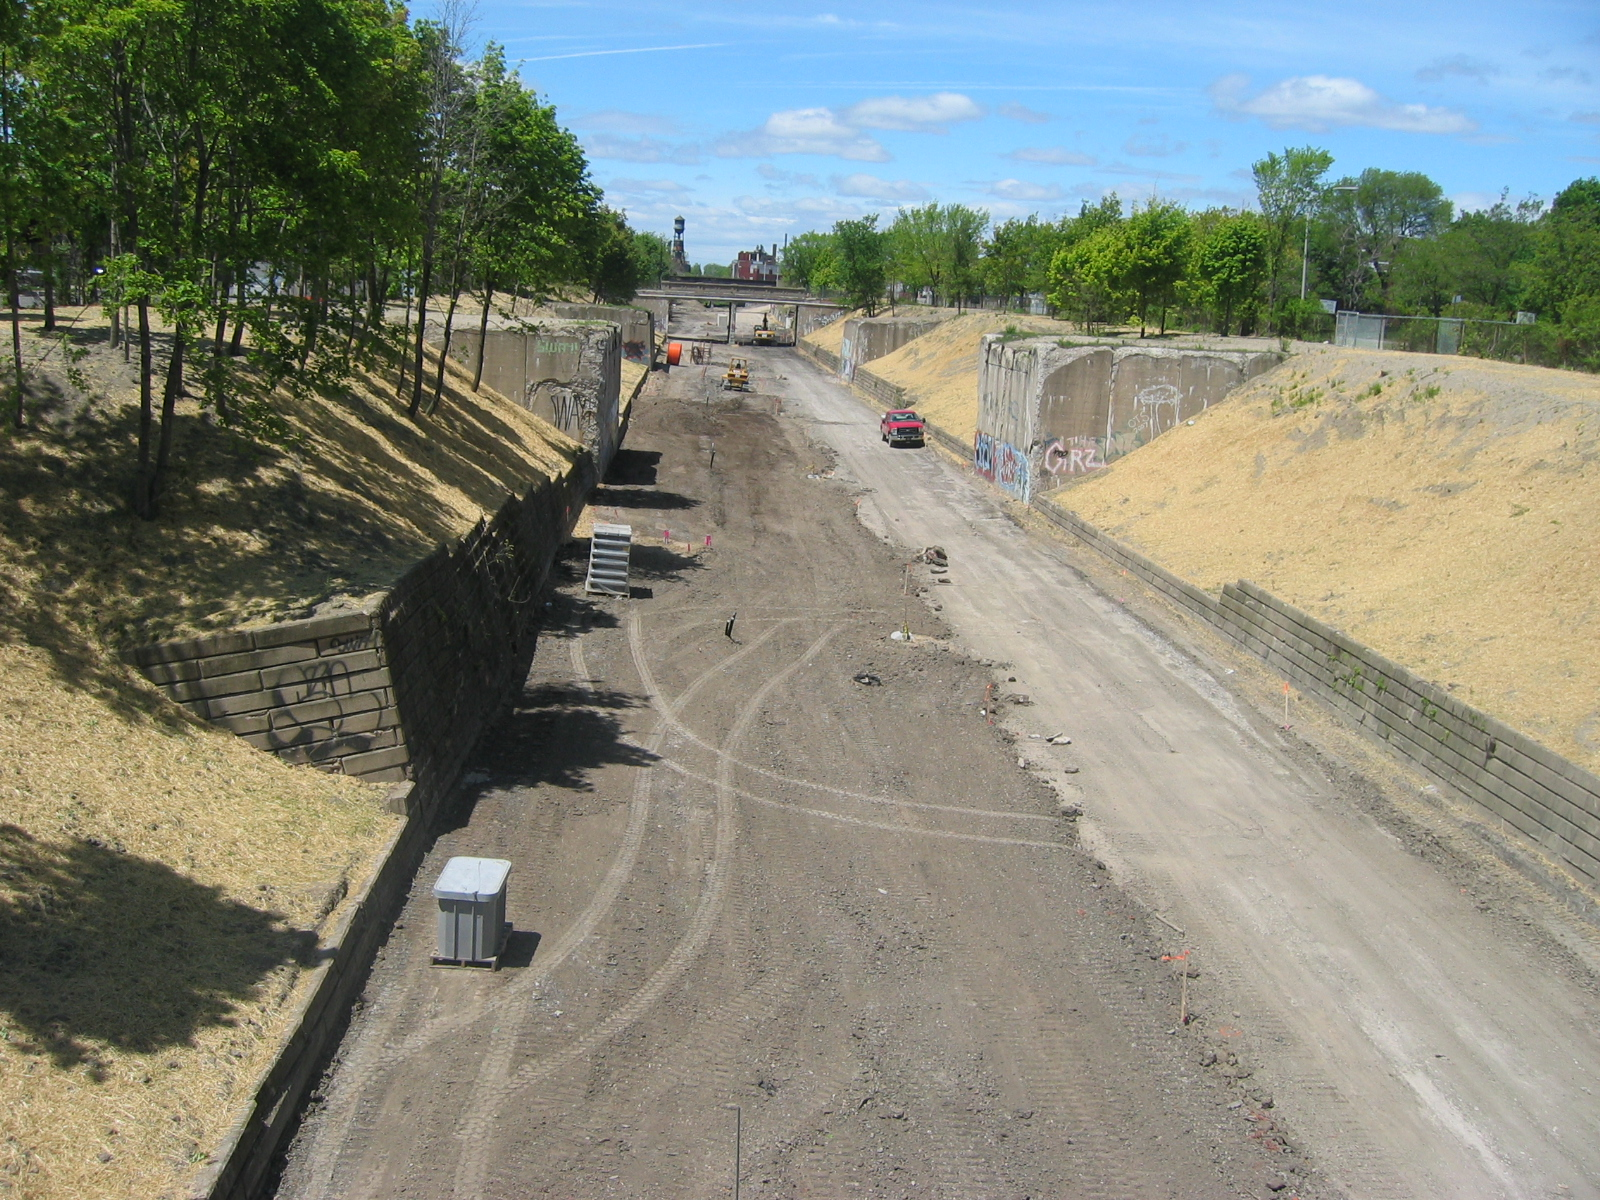 The trail will be on the right half of the Dequindre Cut right-of-way